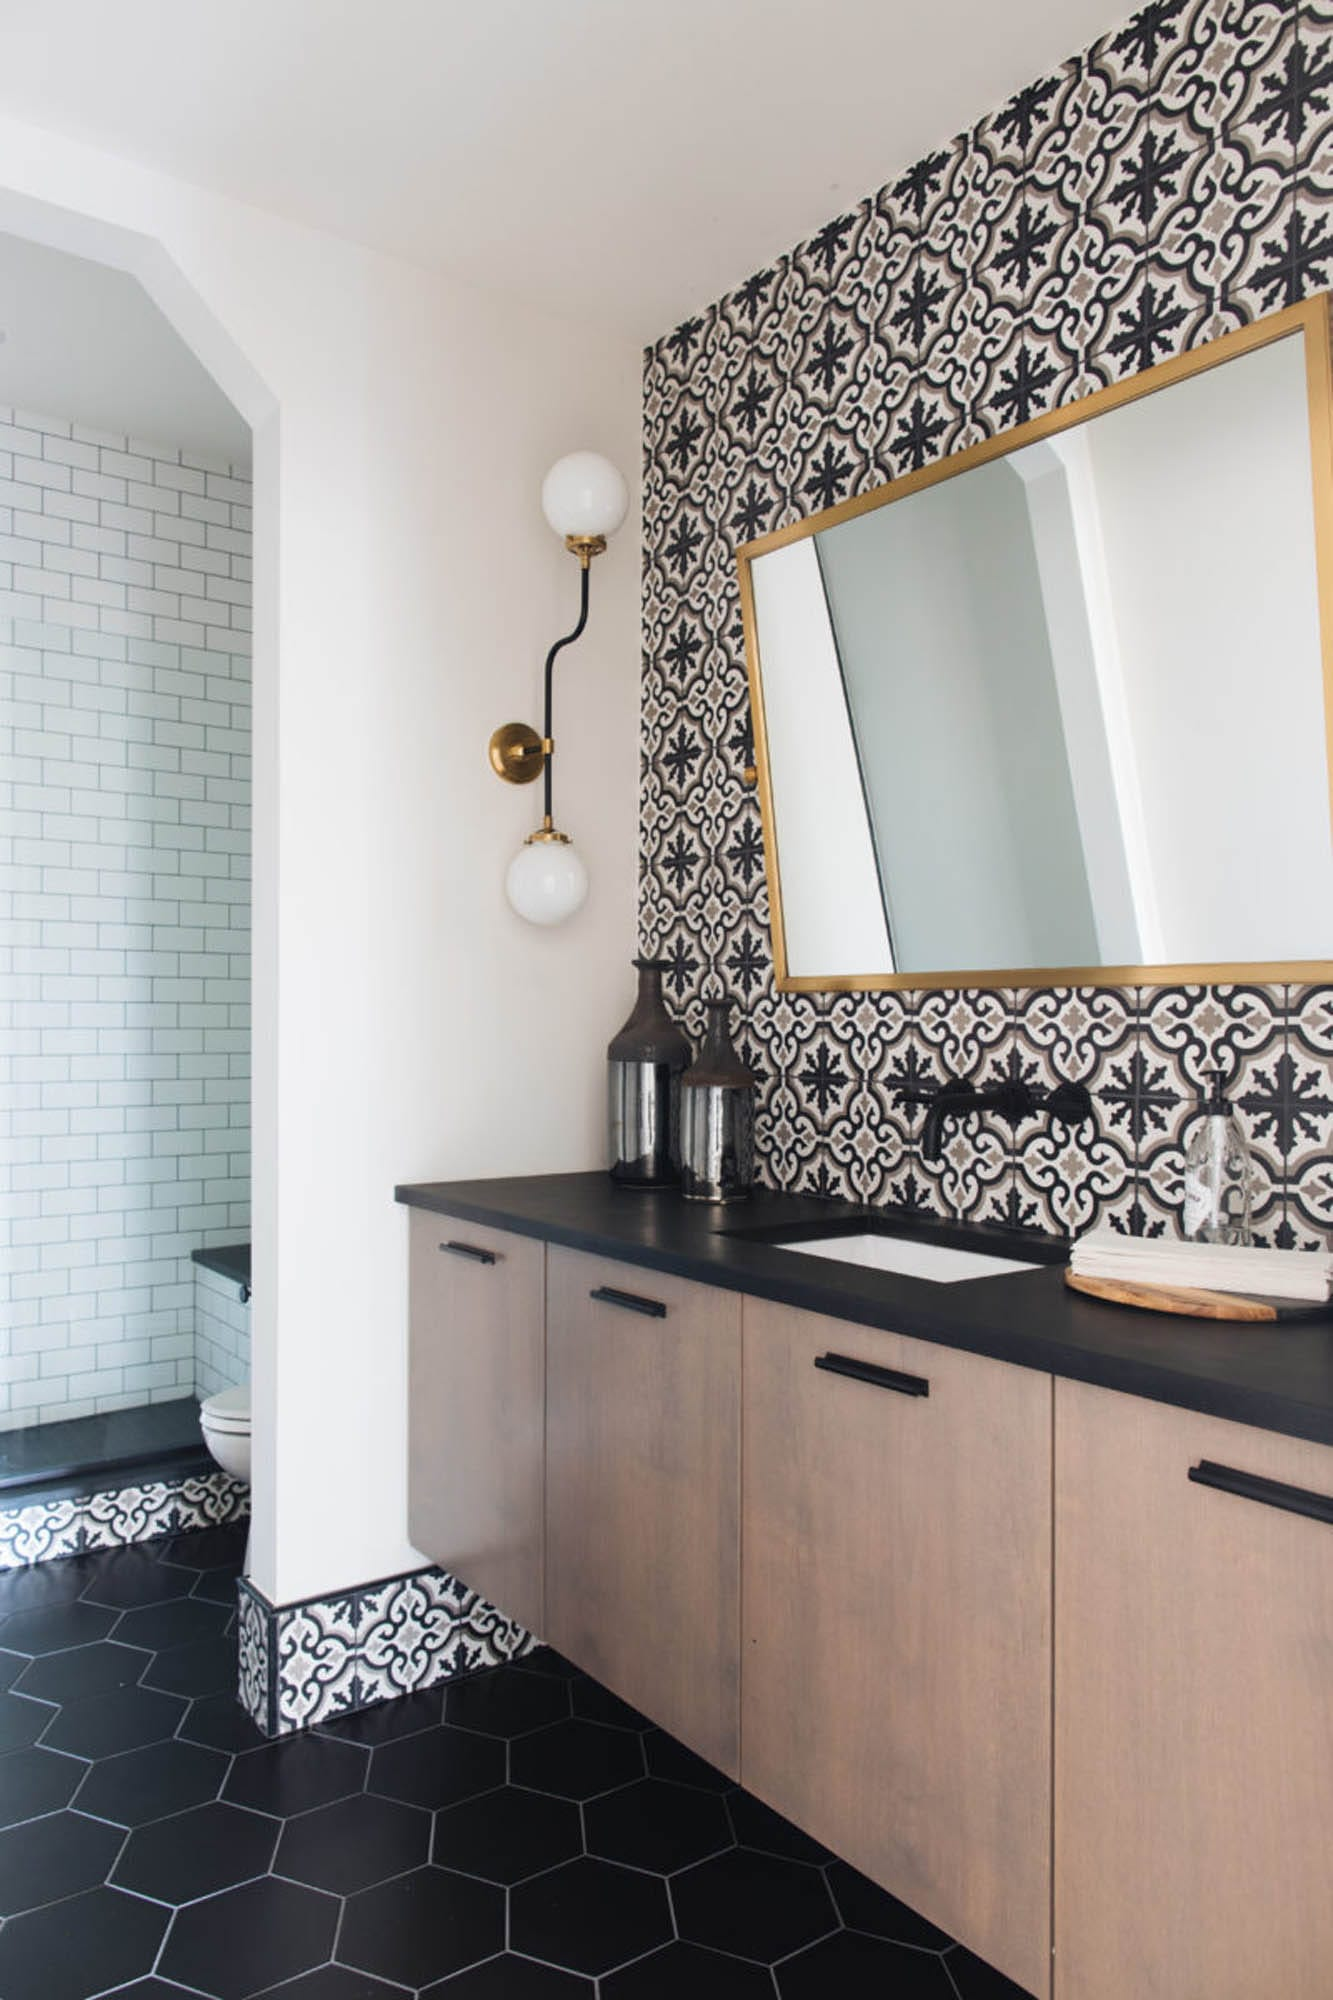 Bathroom with mix of styles